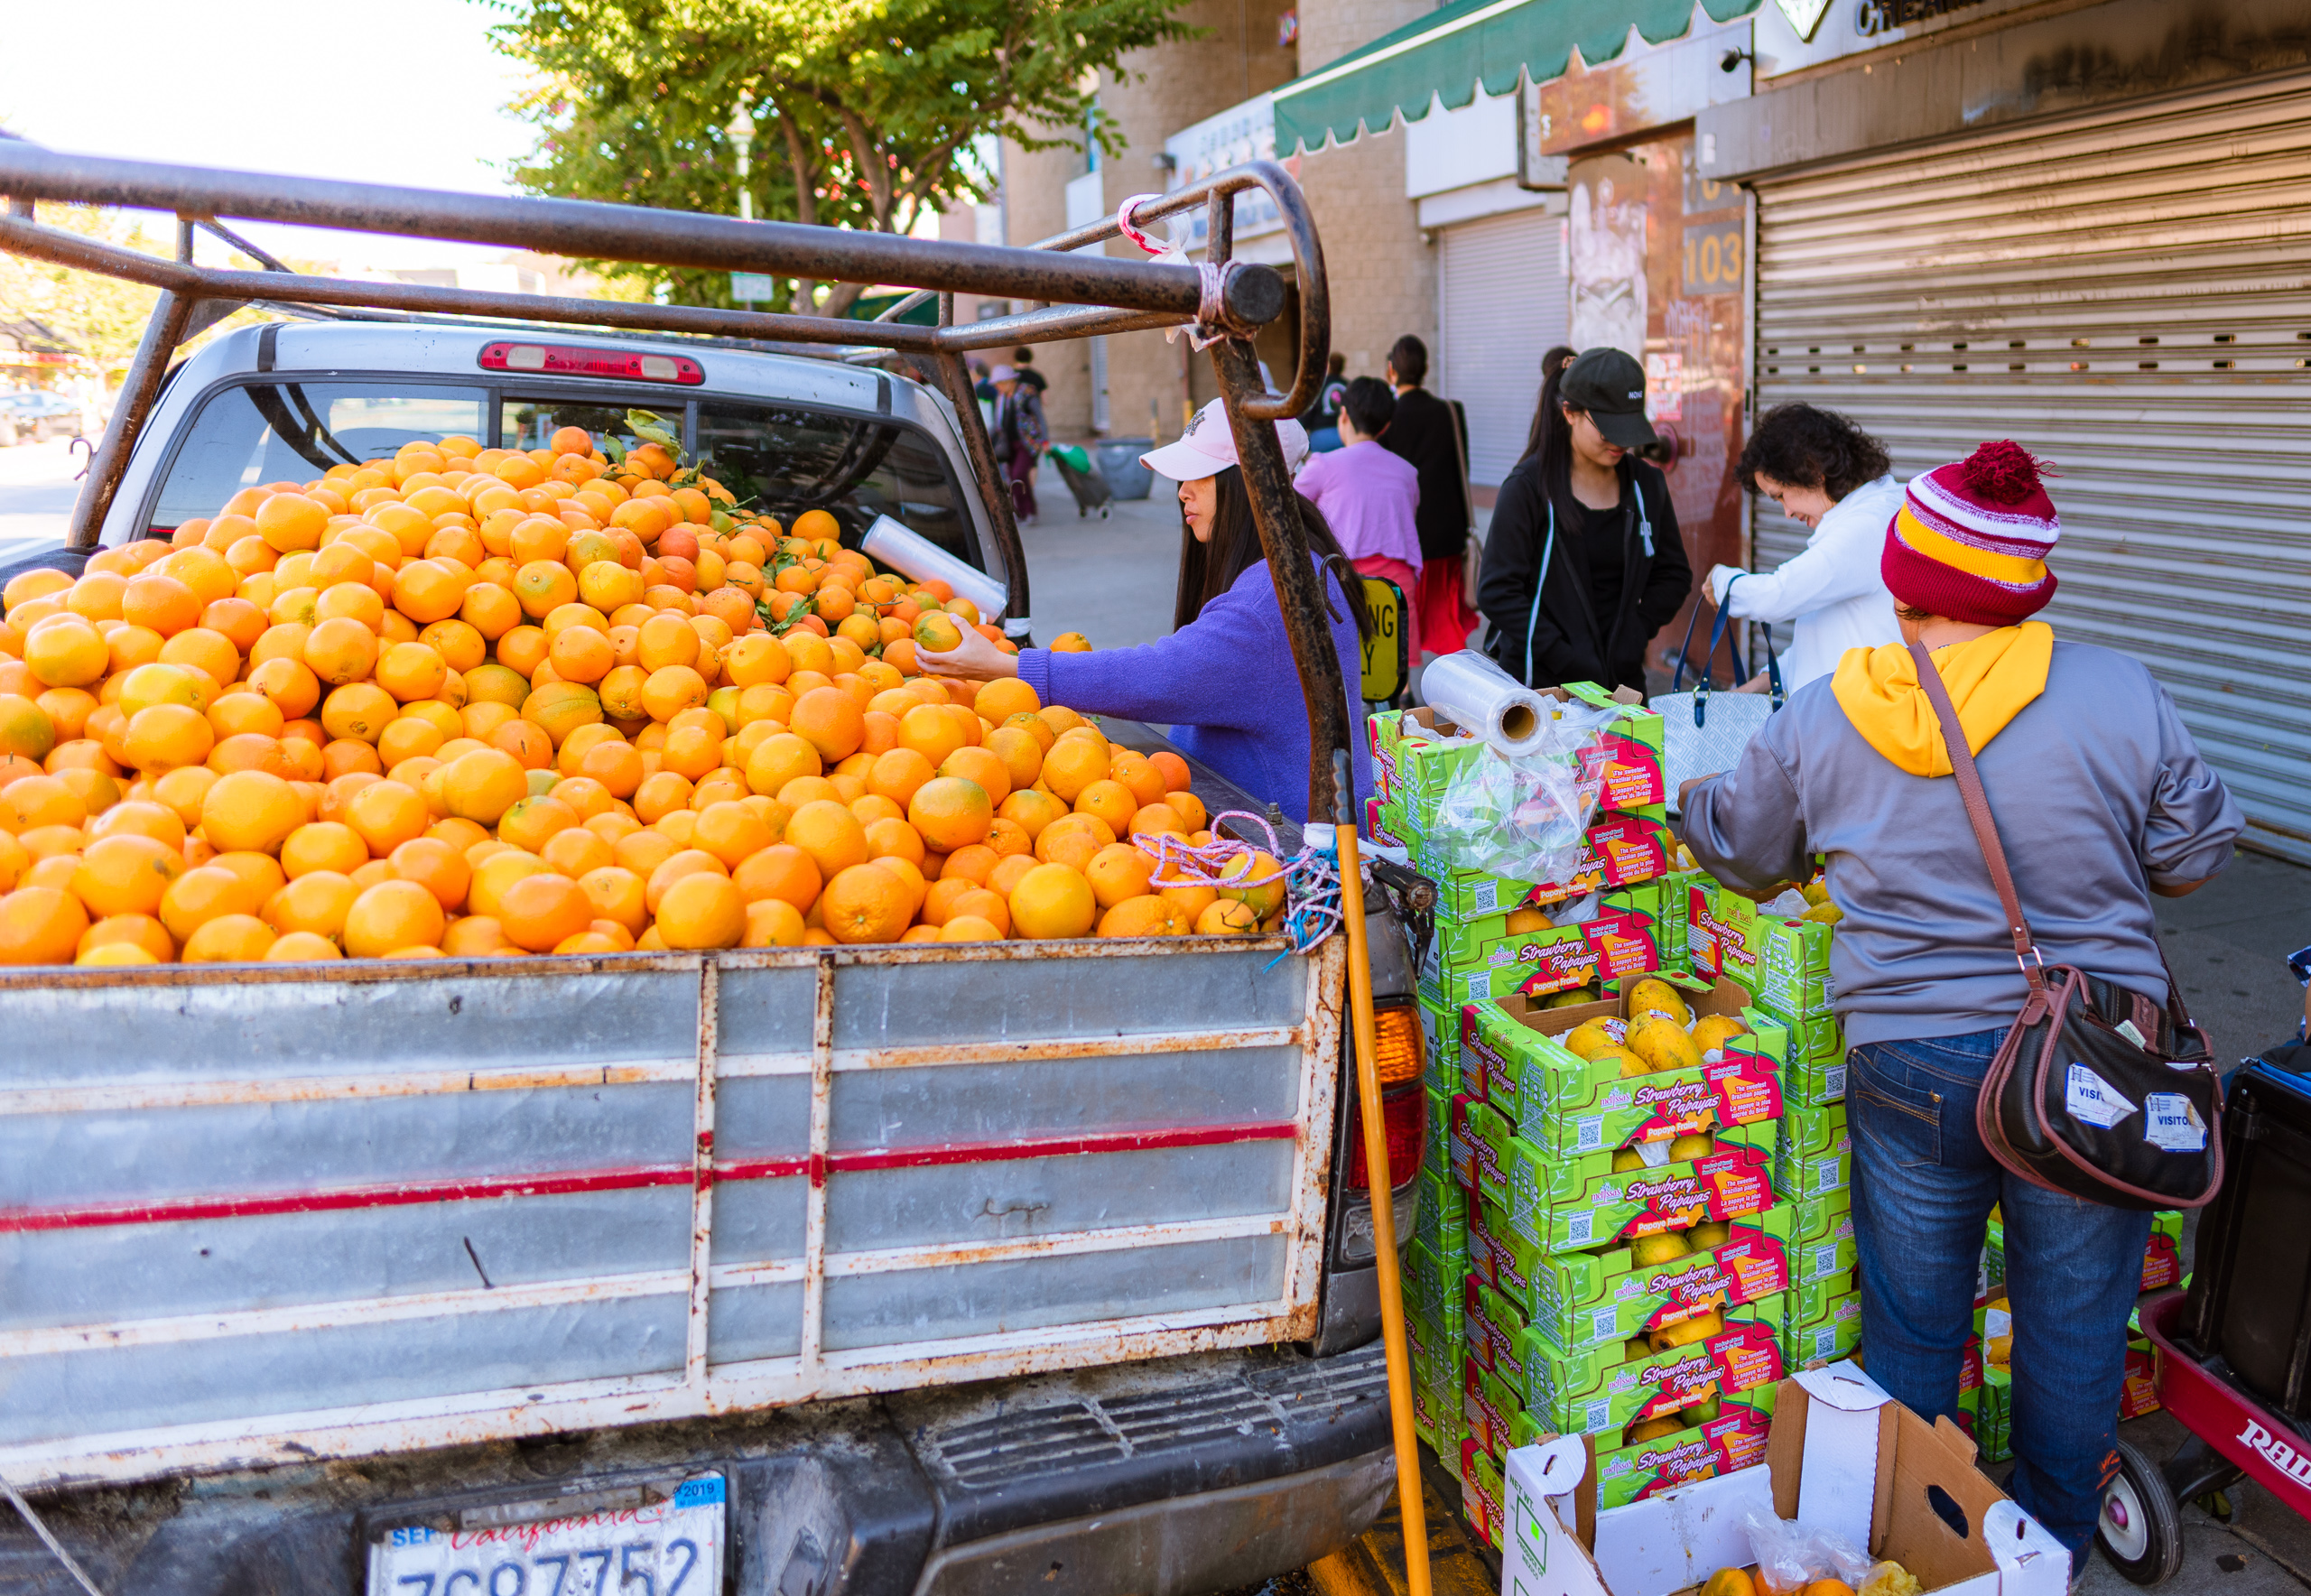 a pickup truck on the street in Chinatown. The back of the truck is overflowing with oranges.